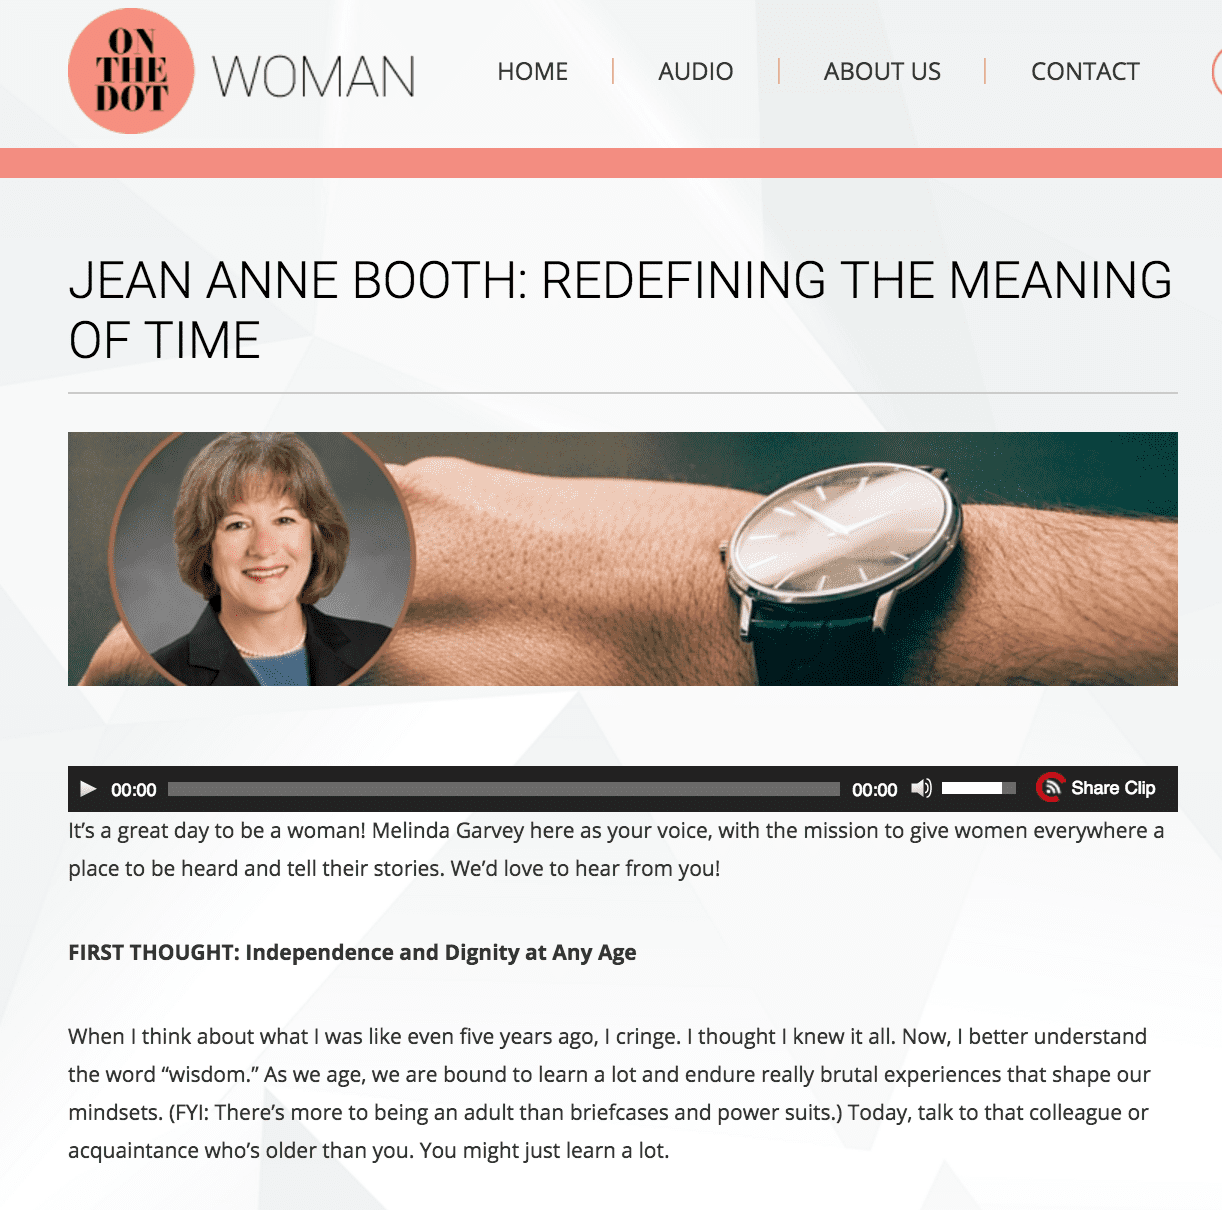 Jean Anne Booth: Redefining the Meaning of Time – Featured from On the Dot Woman